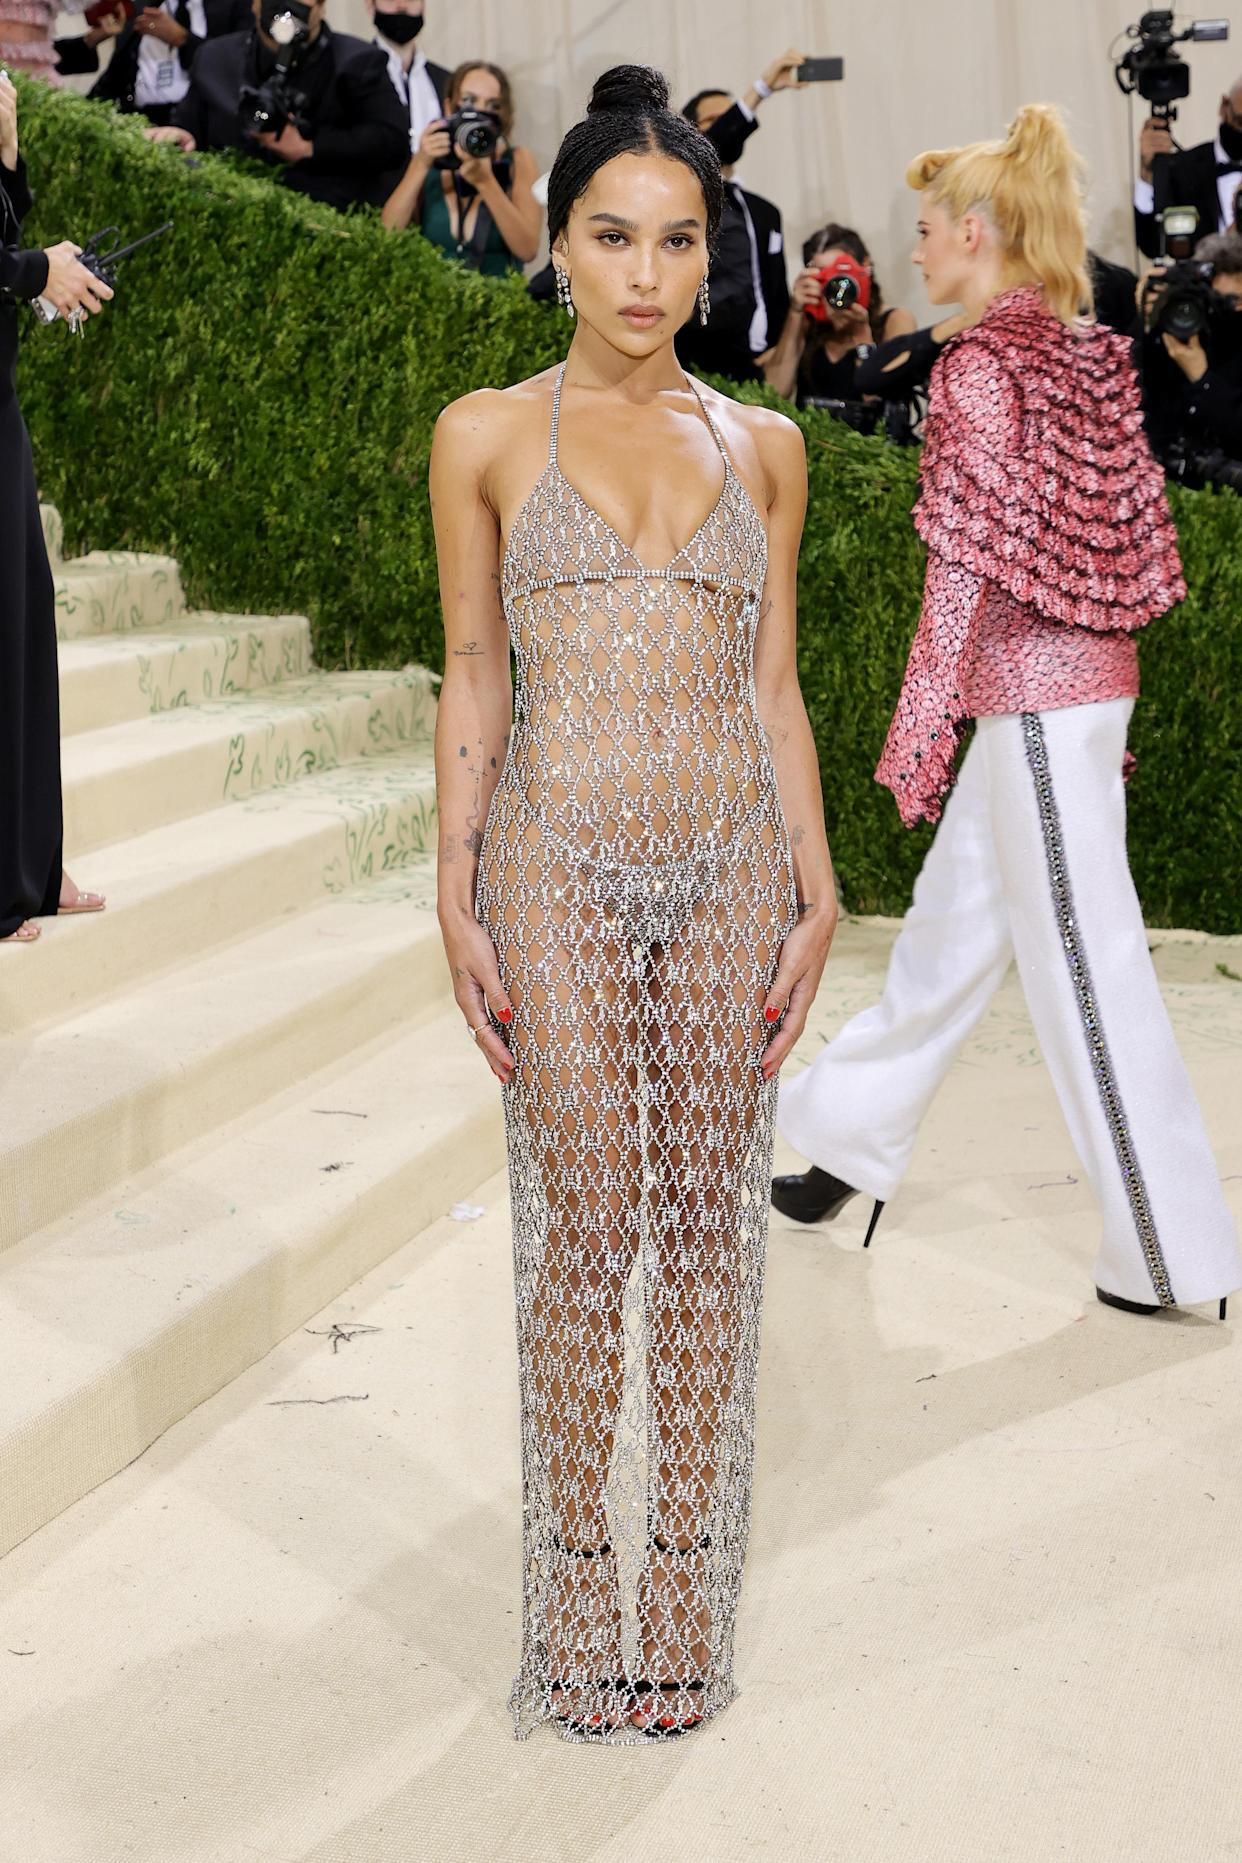 Zoe Kravitz attends The 2021 Met Gala Celebrating In America: A Lexicon Of Fashion at Metropolitan Museum of Art on September 13, 2021 in New York City. (Getty Images)